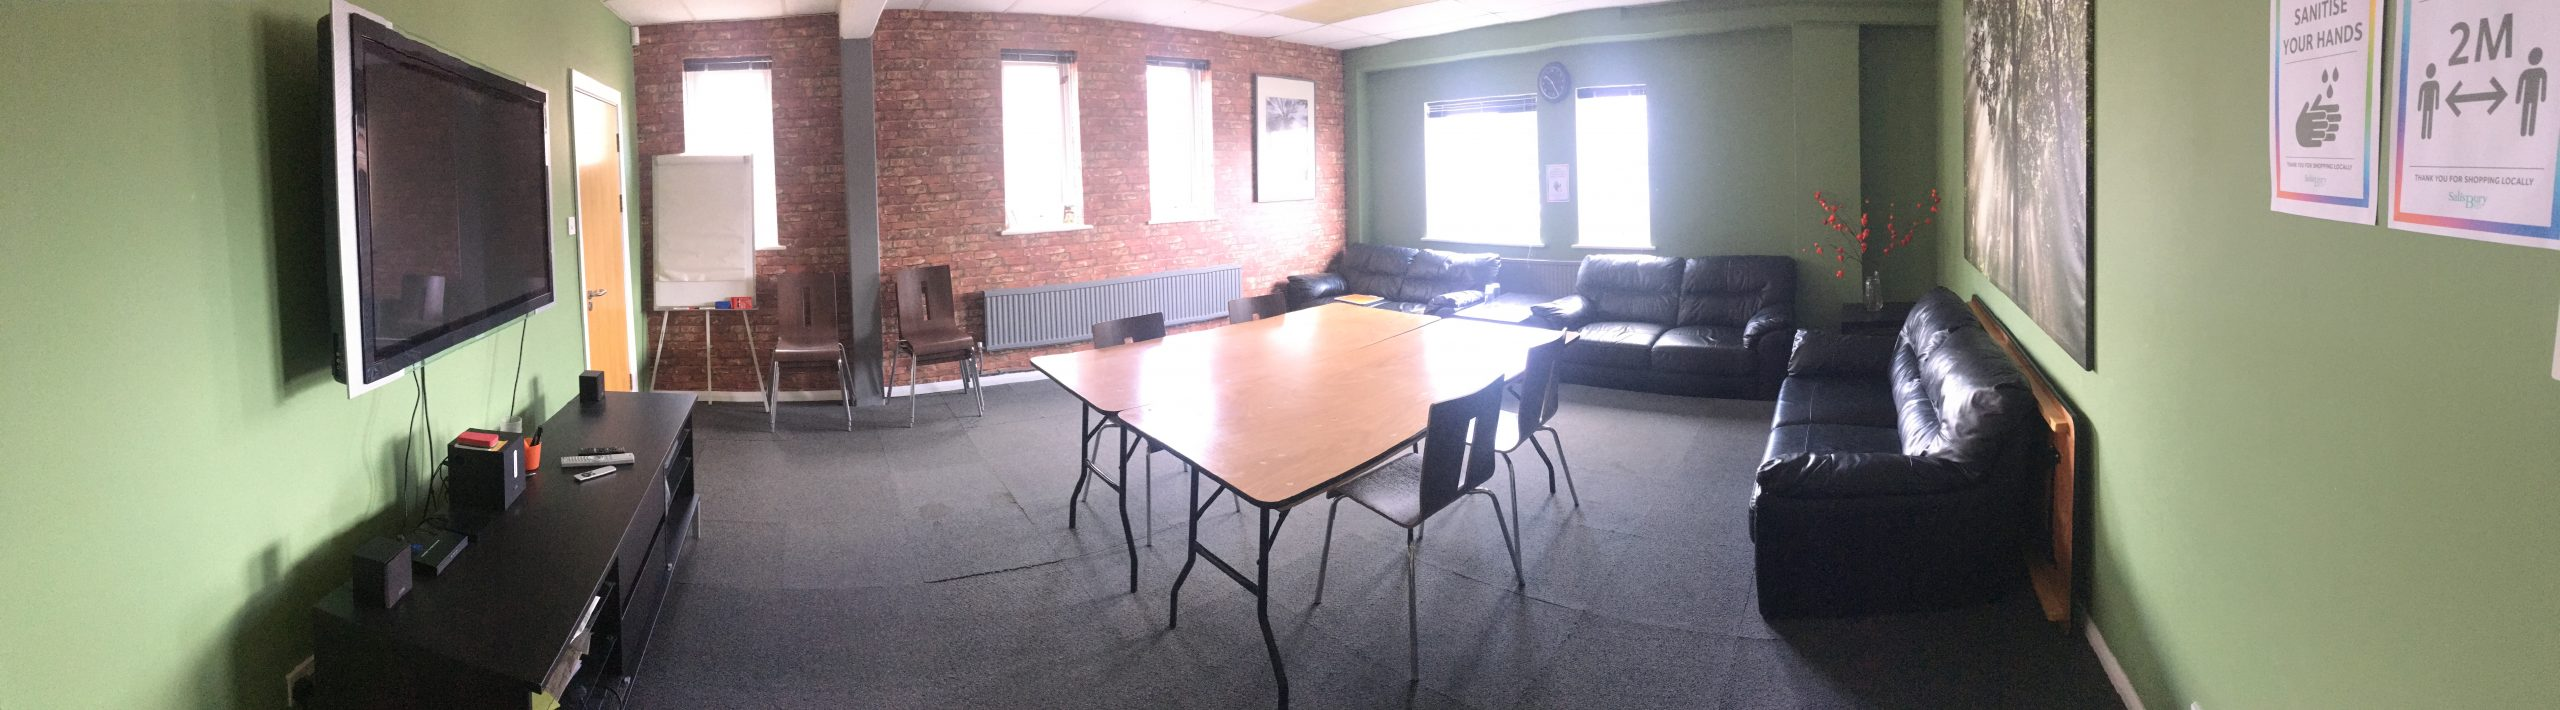 panoramic view of training room with central table and chairs